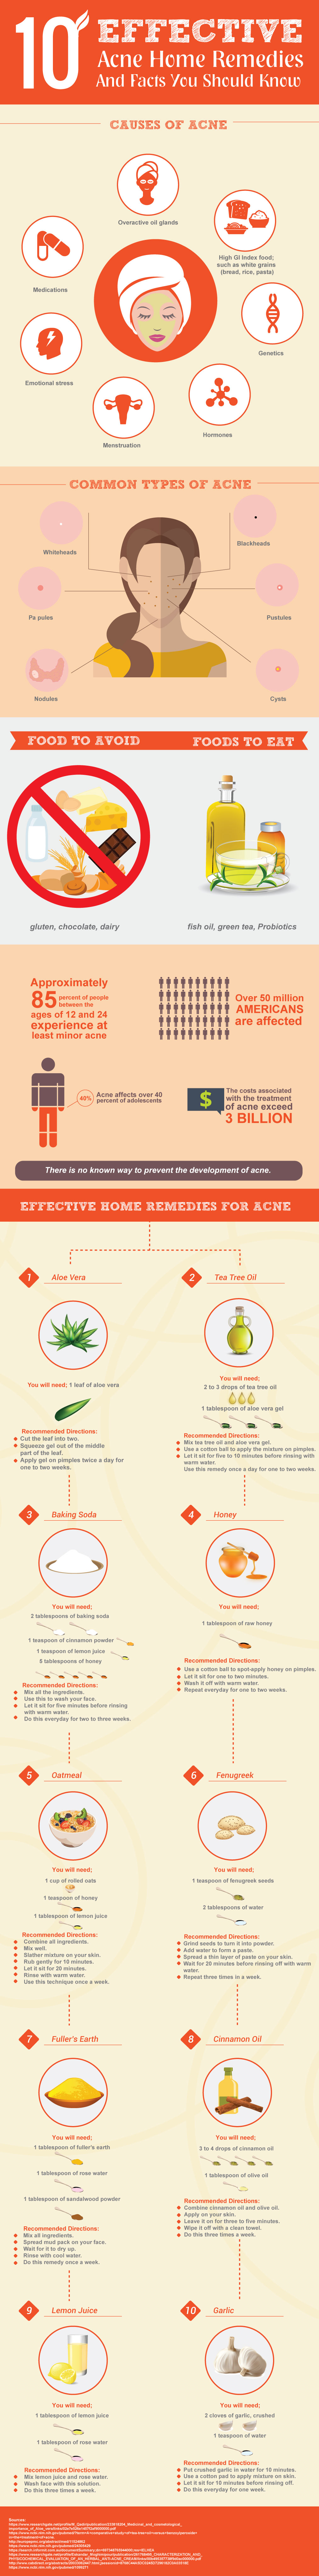 10 Effective Acne Remedies and Facts